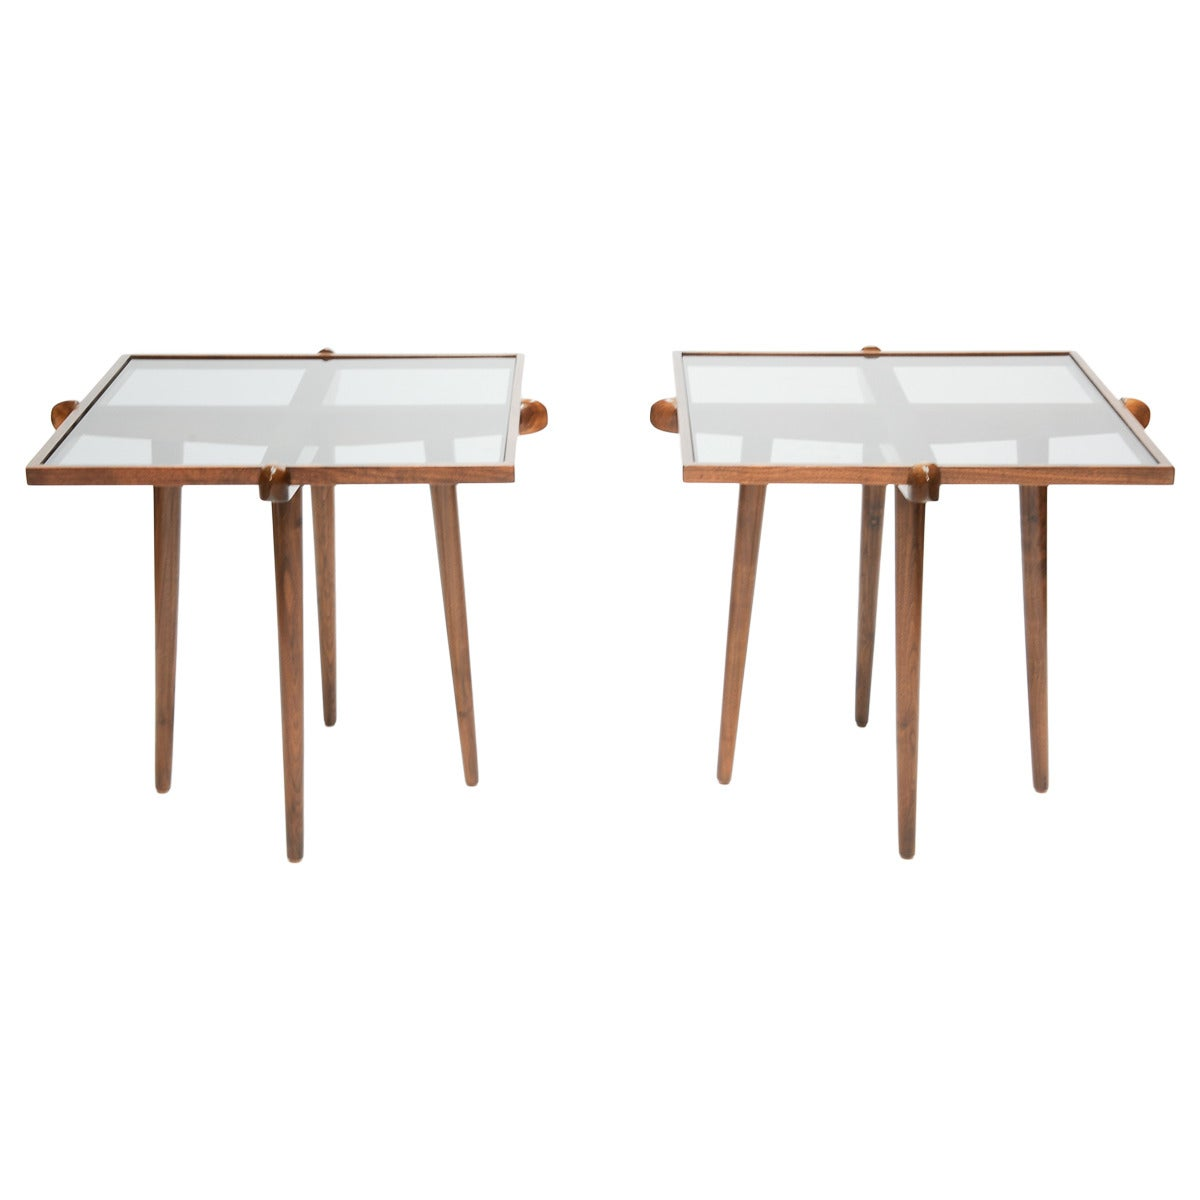 Pair of Walnut and Smoke Glass Side Tables in the Manner of Gio Ponti 1